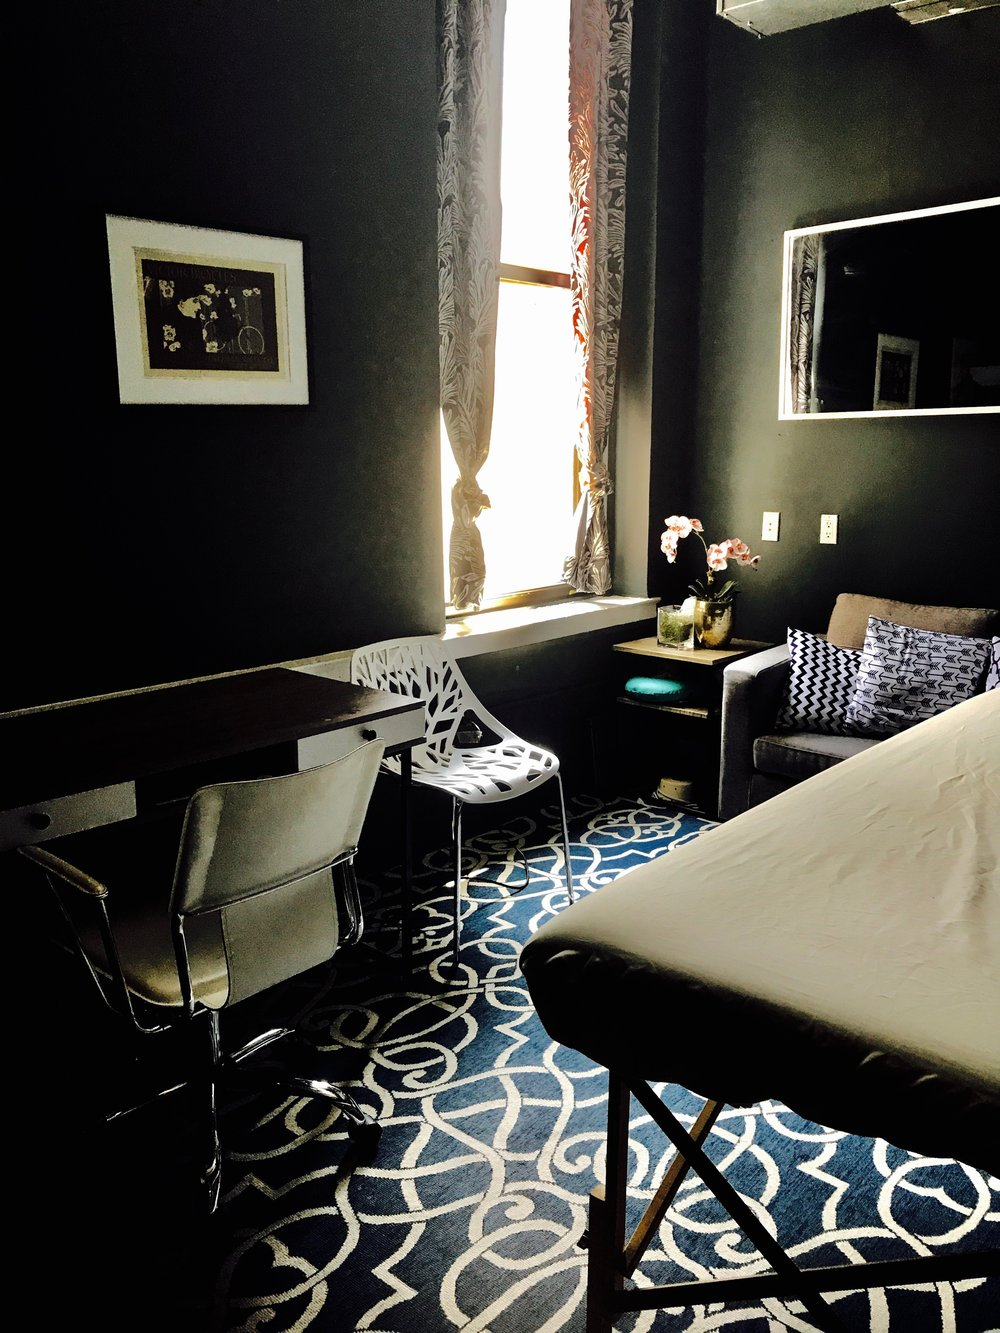 ROOM 7  This Room Features the Following:  - 14' x 10' of space  - Window with views of Broadway  - Desk, couch, and accessory chair  - Massage table can be removed from the room for use as a therapy suit